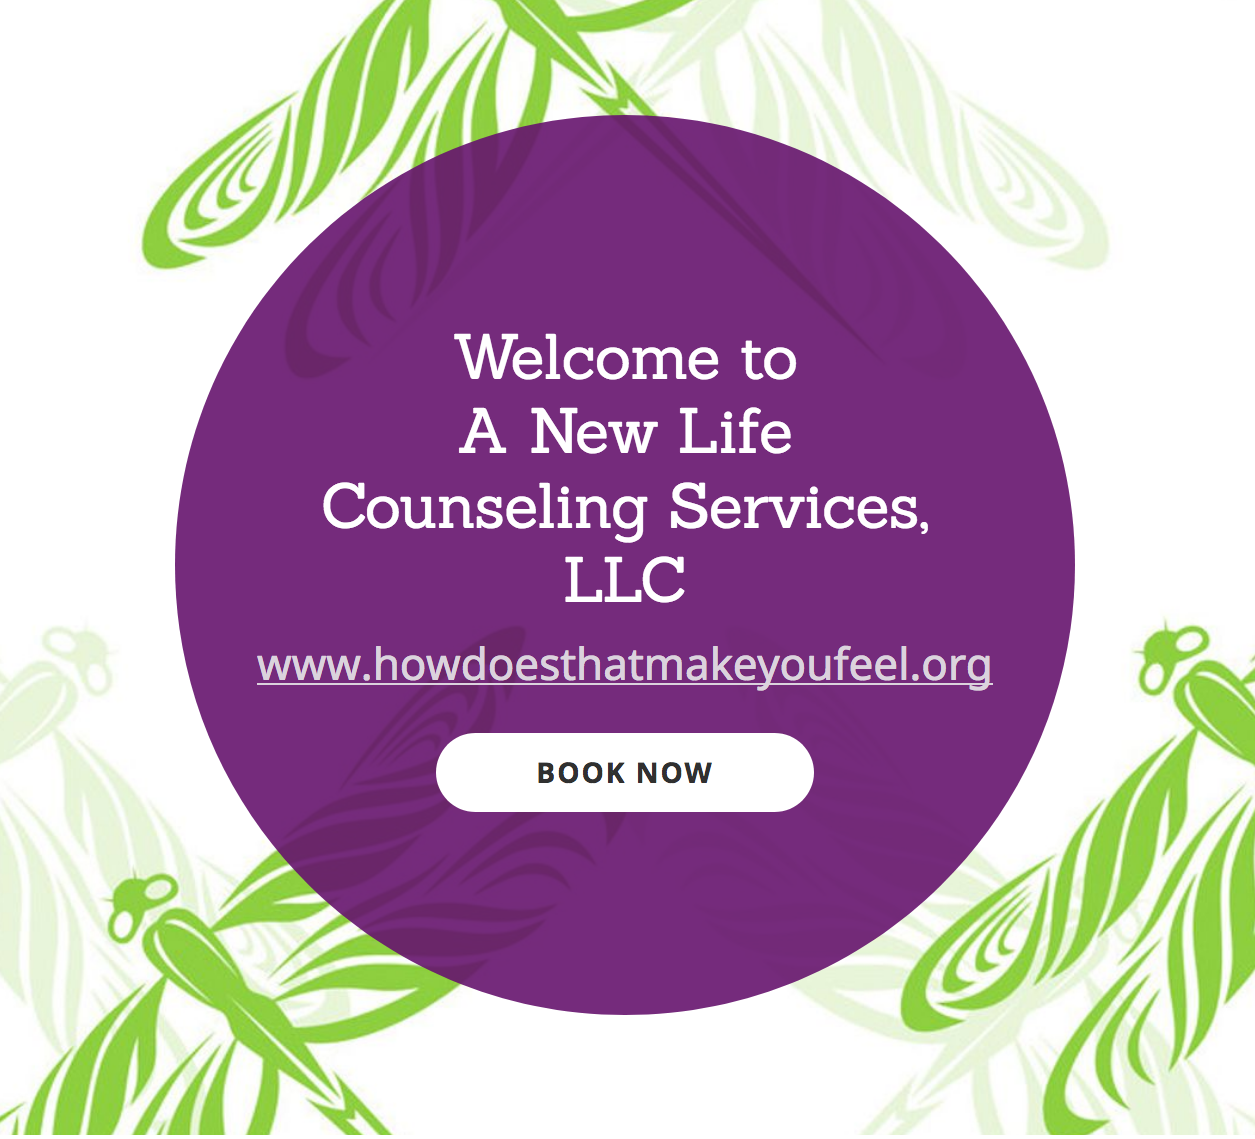 A New Life Counseling Services